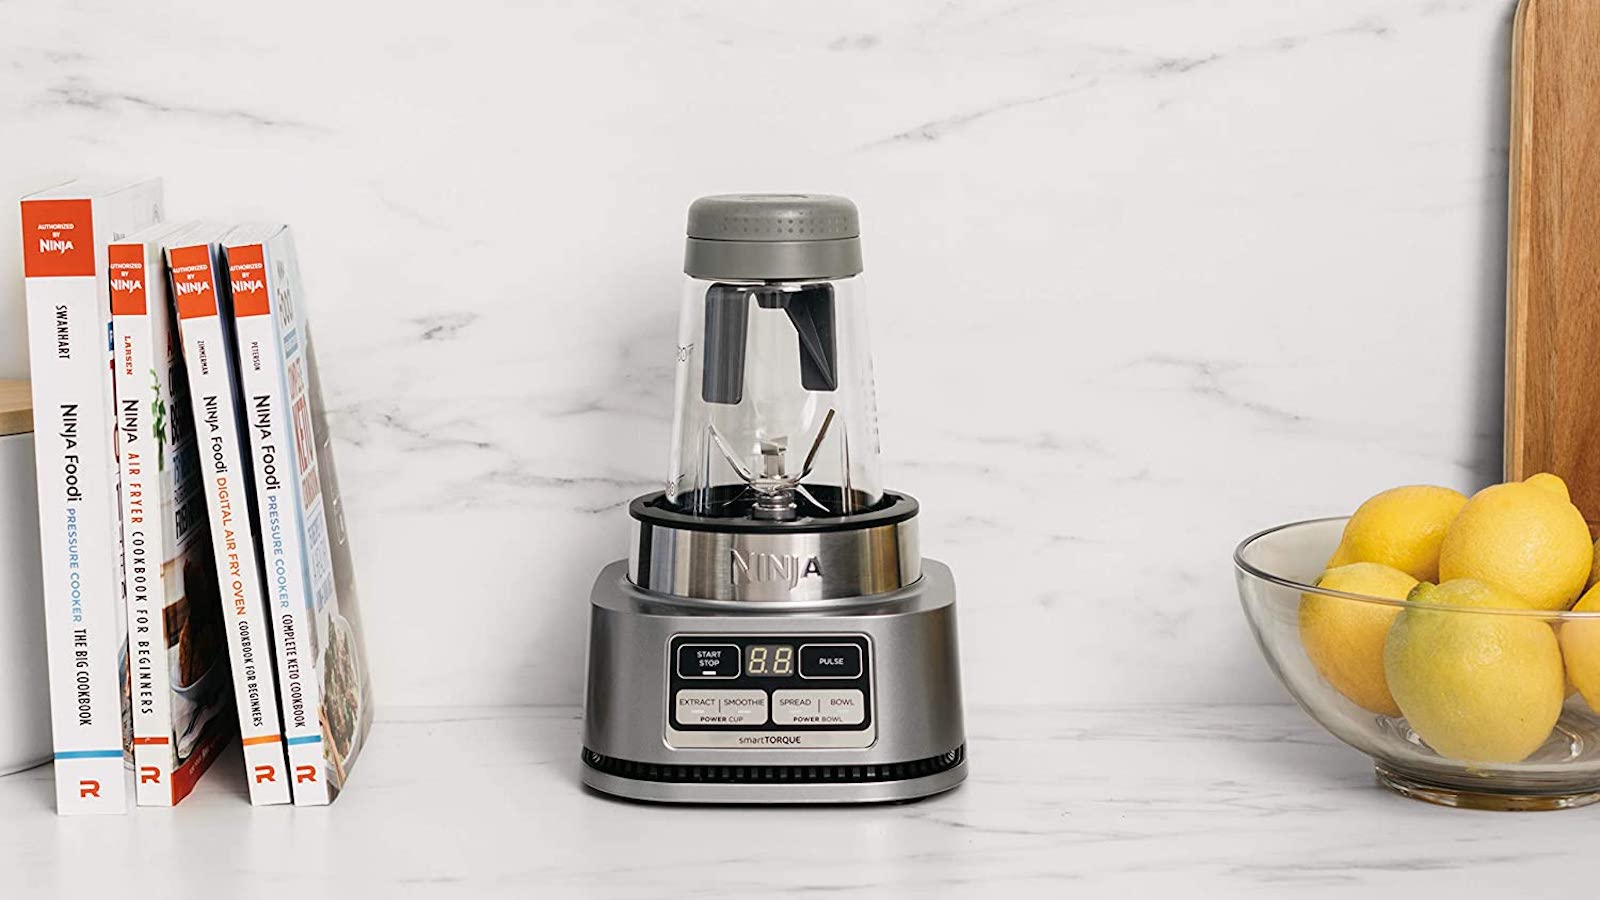 This smoothie maker by Ninja features smartTORQUE for tough foods